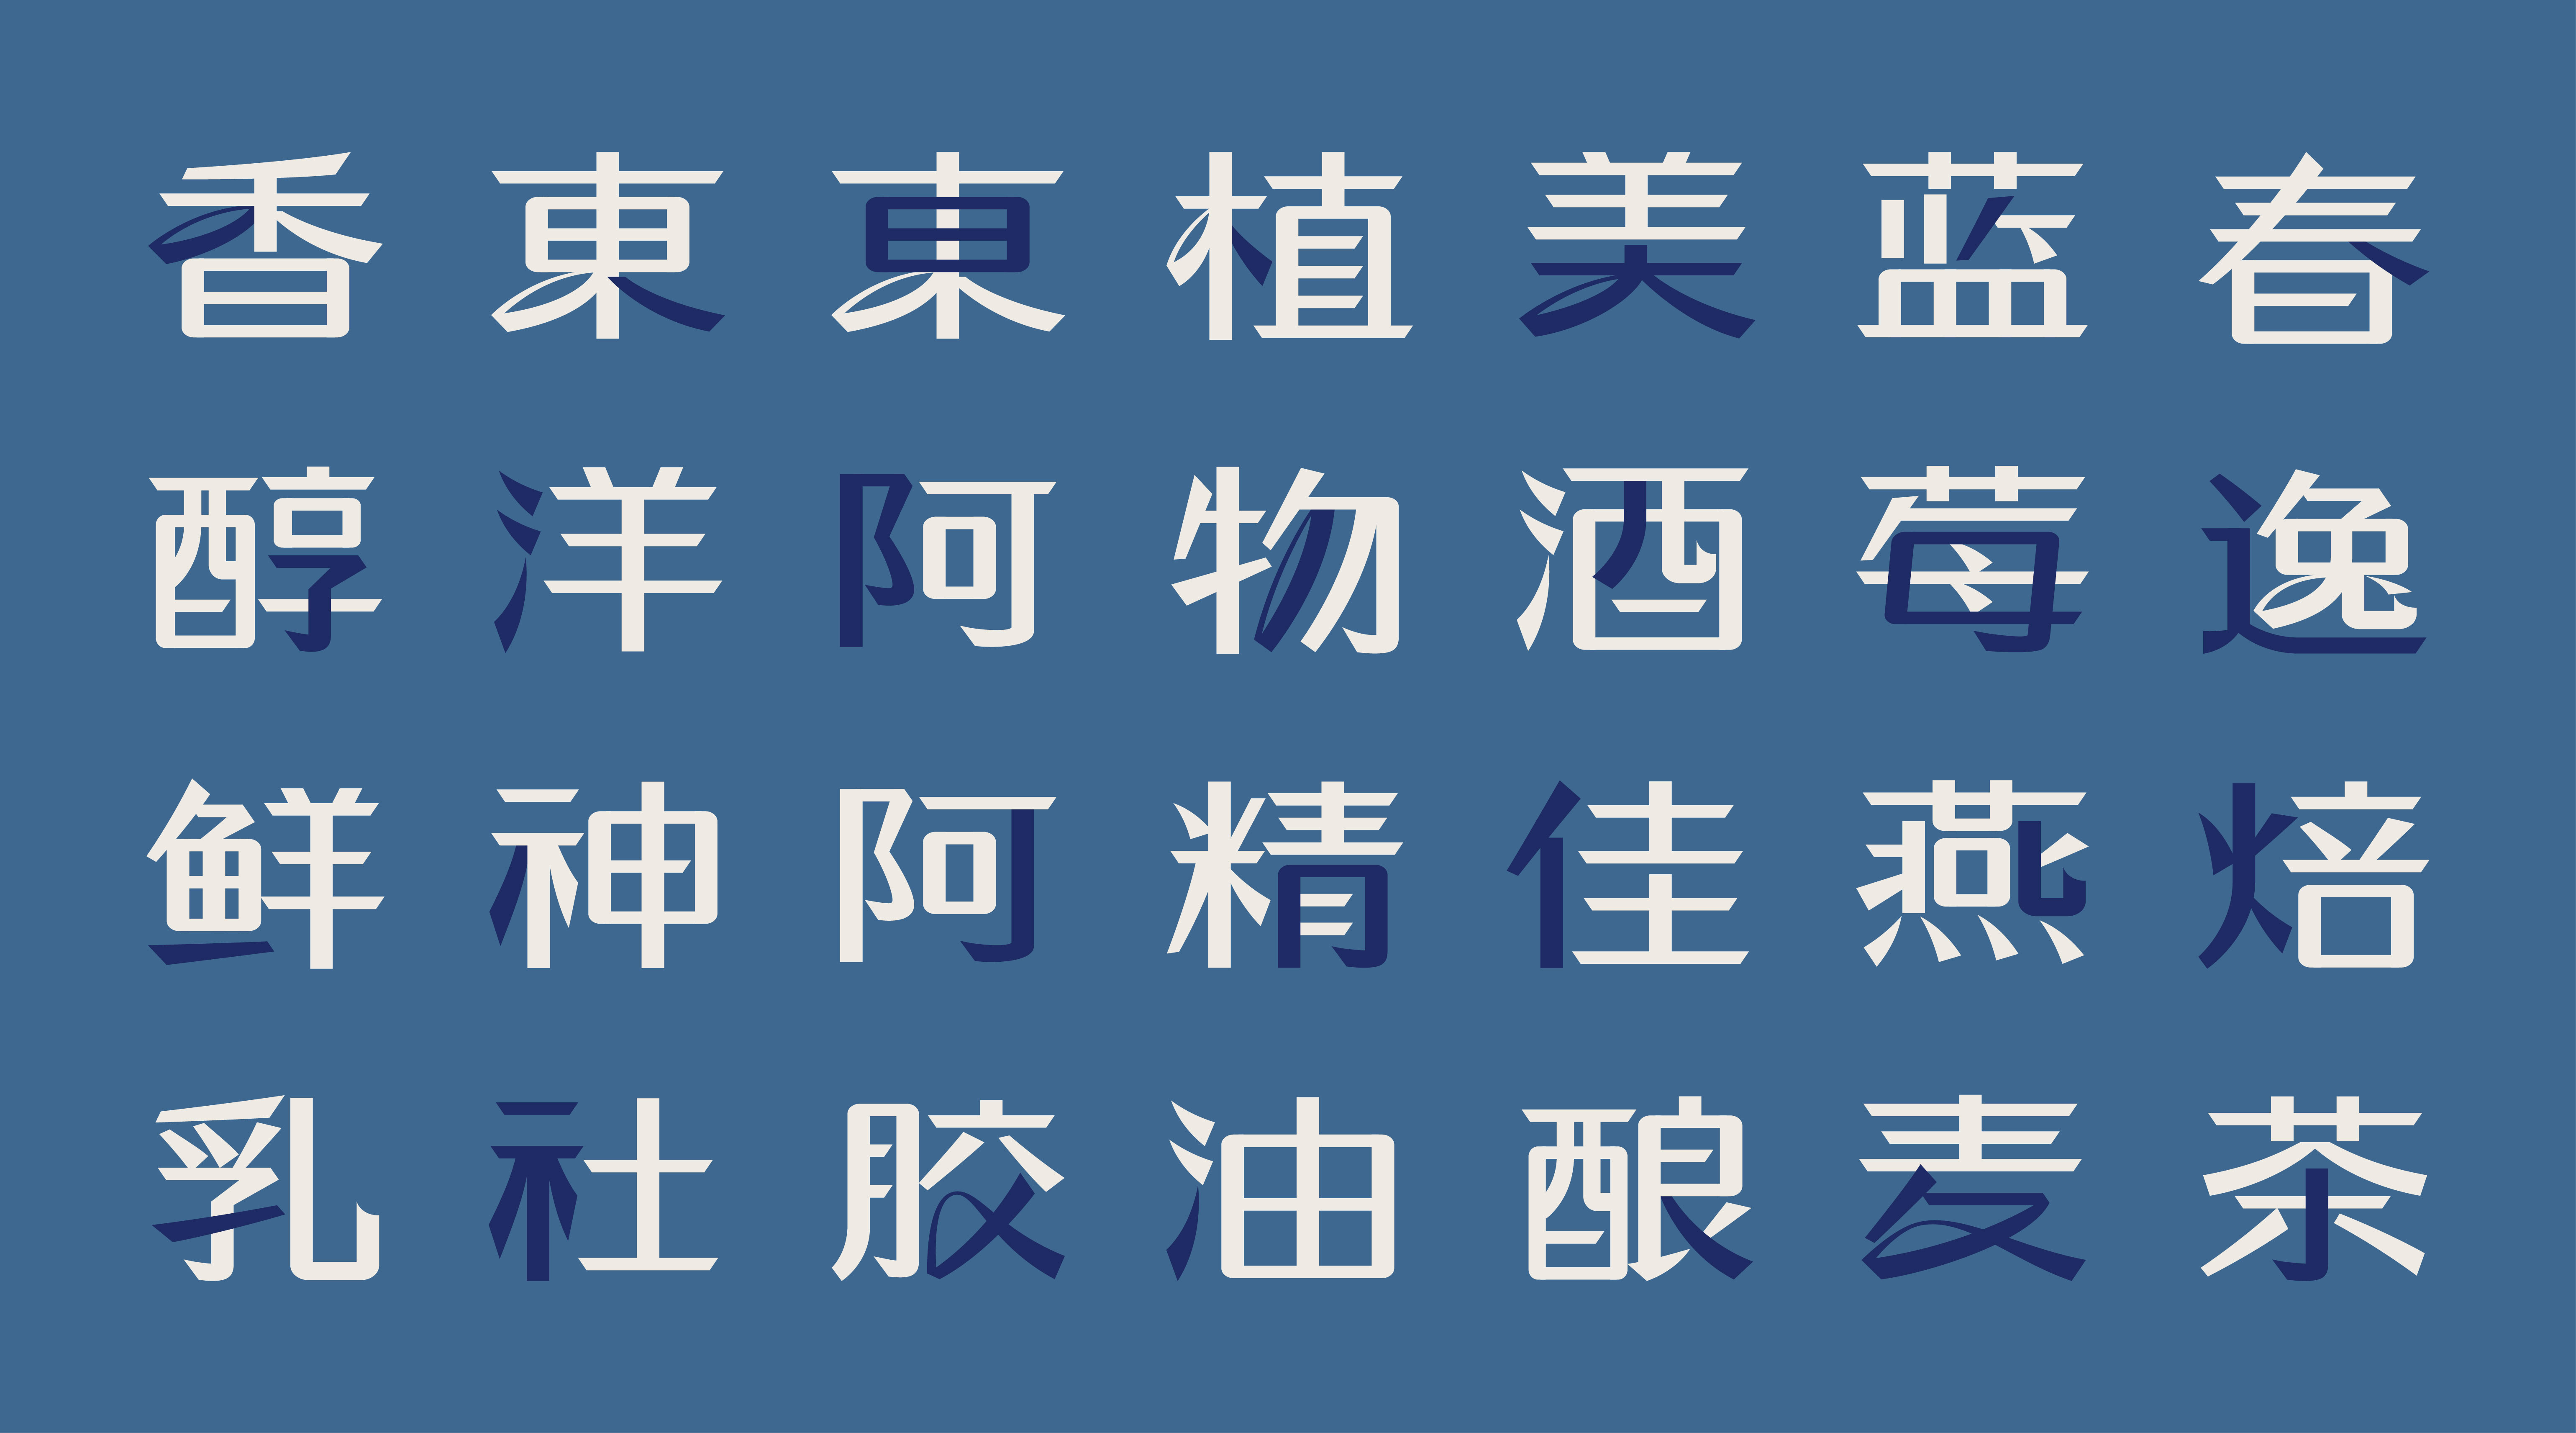 22P Chinese font design collection inspiration #.90